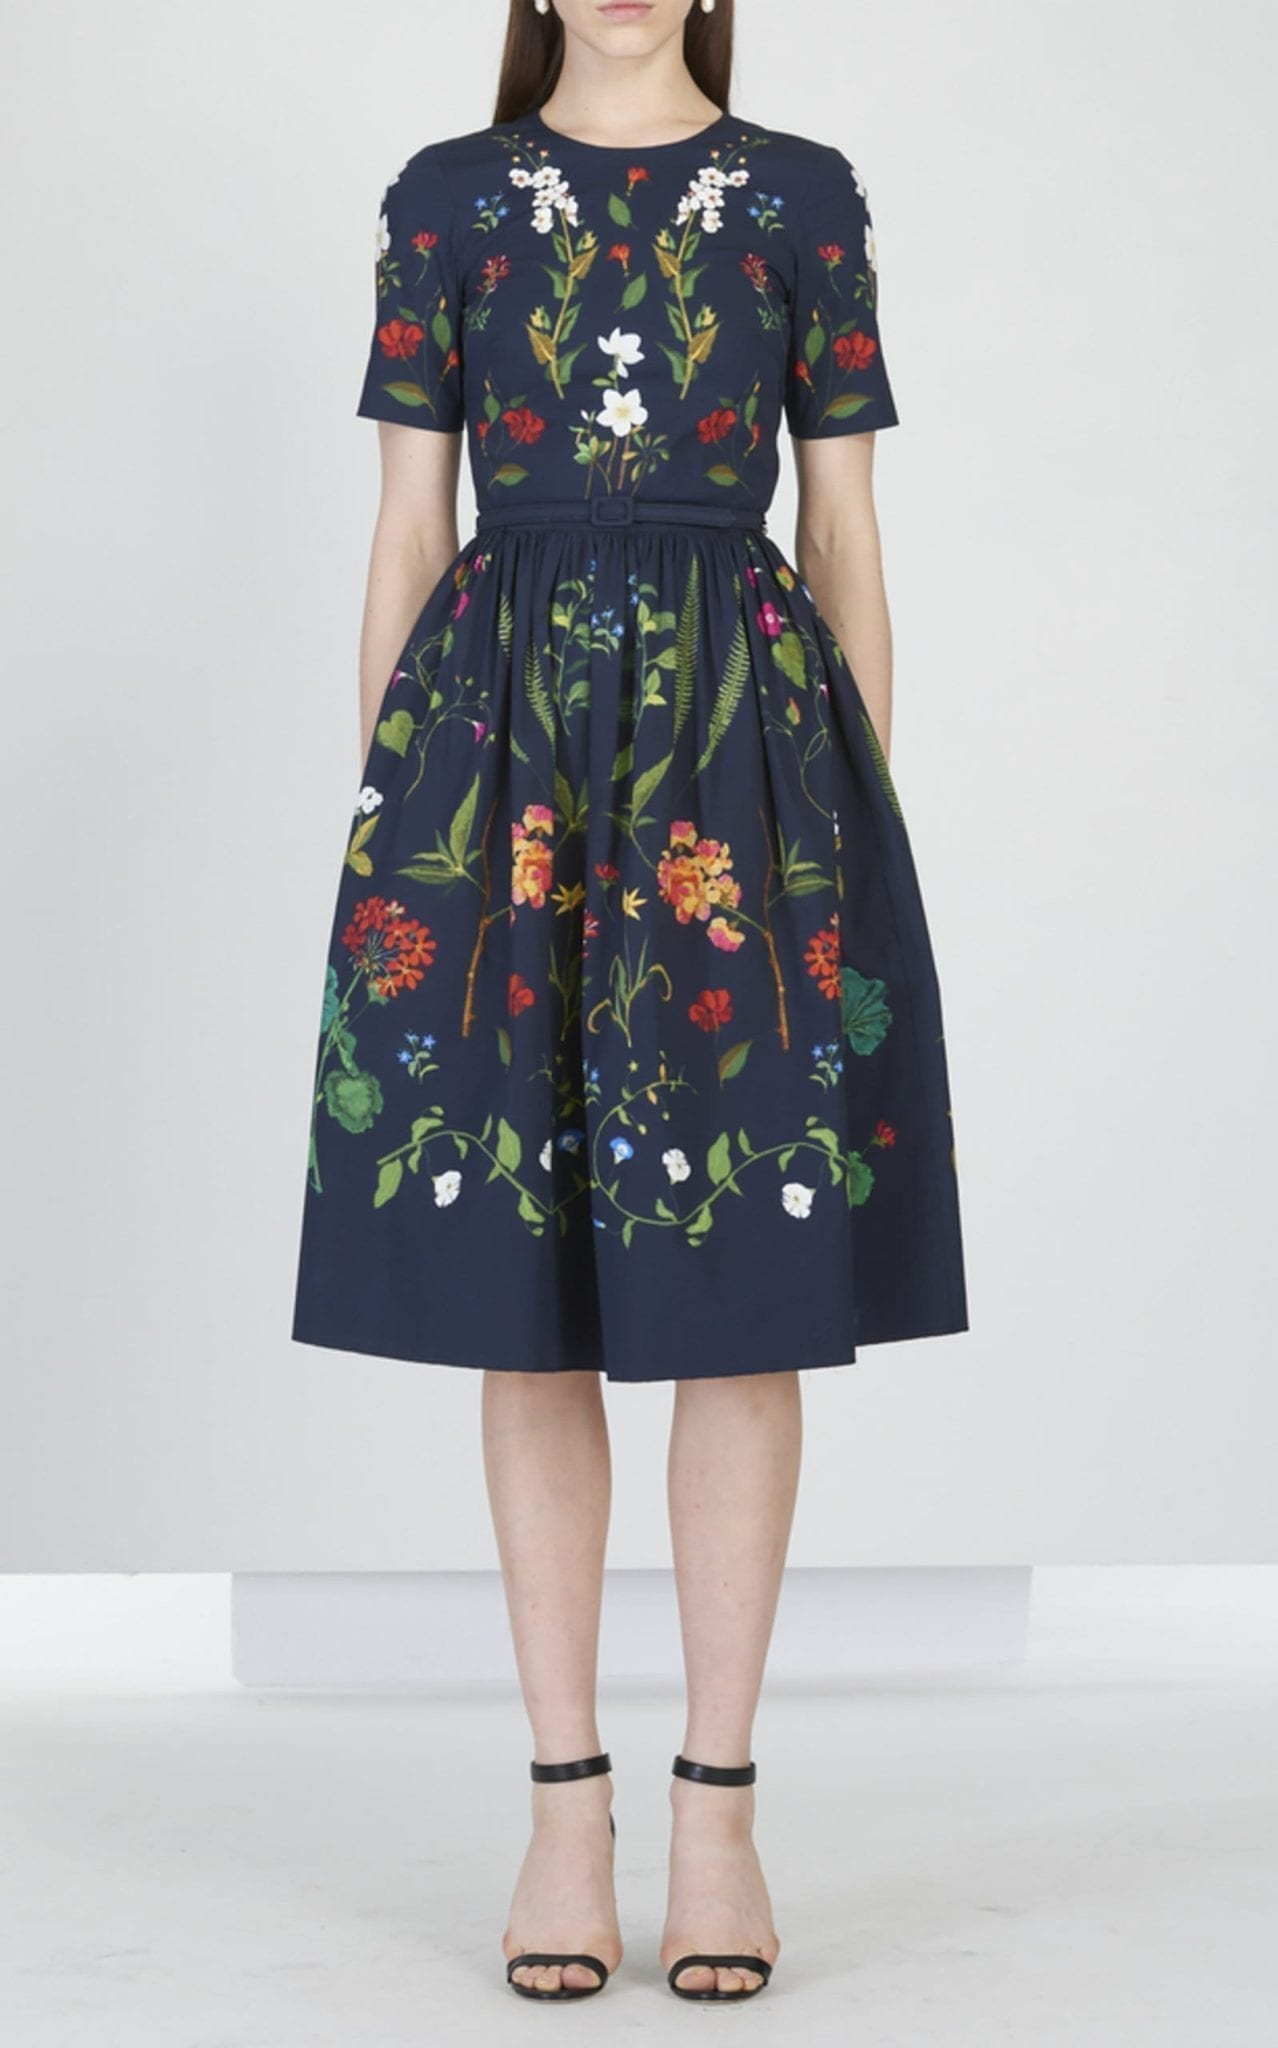 OSCAR DE LA RENTA Floral Embroidered Stretch-Cotton Midi Navy Dress